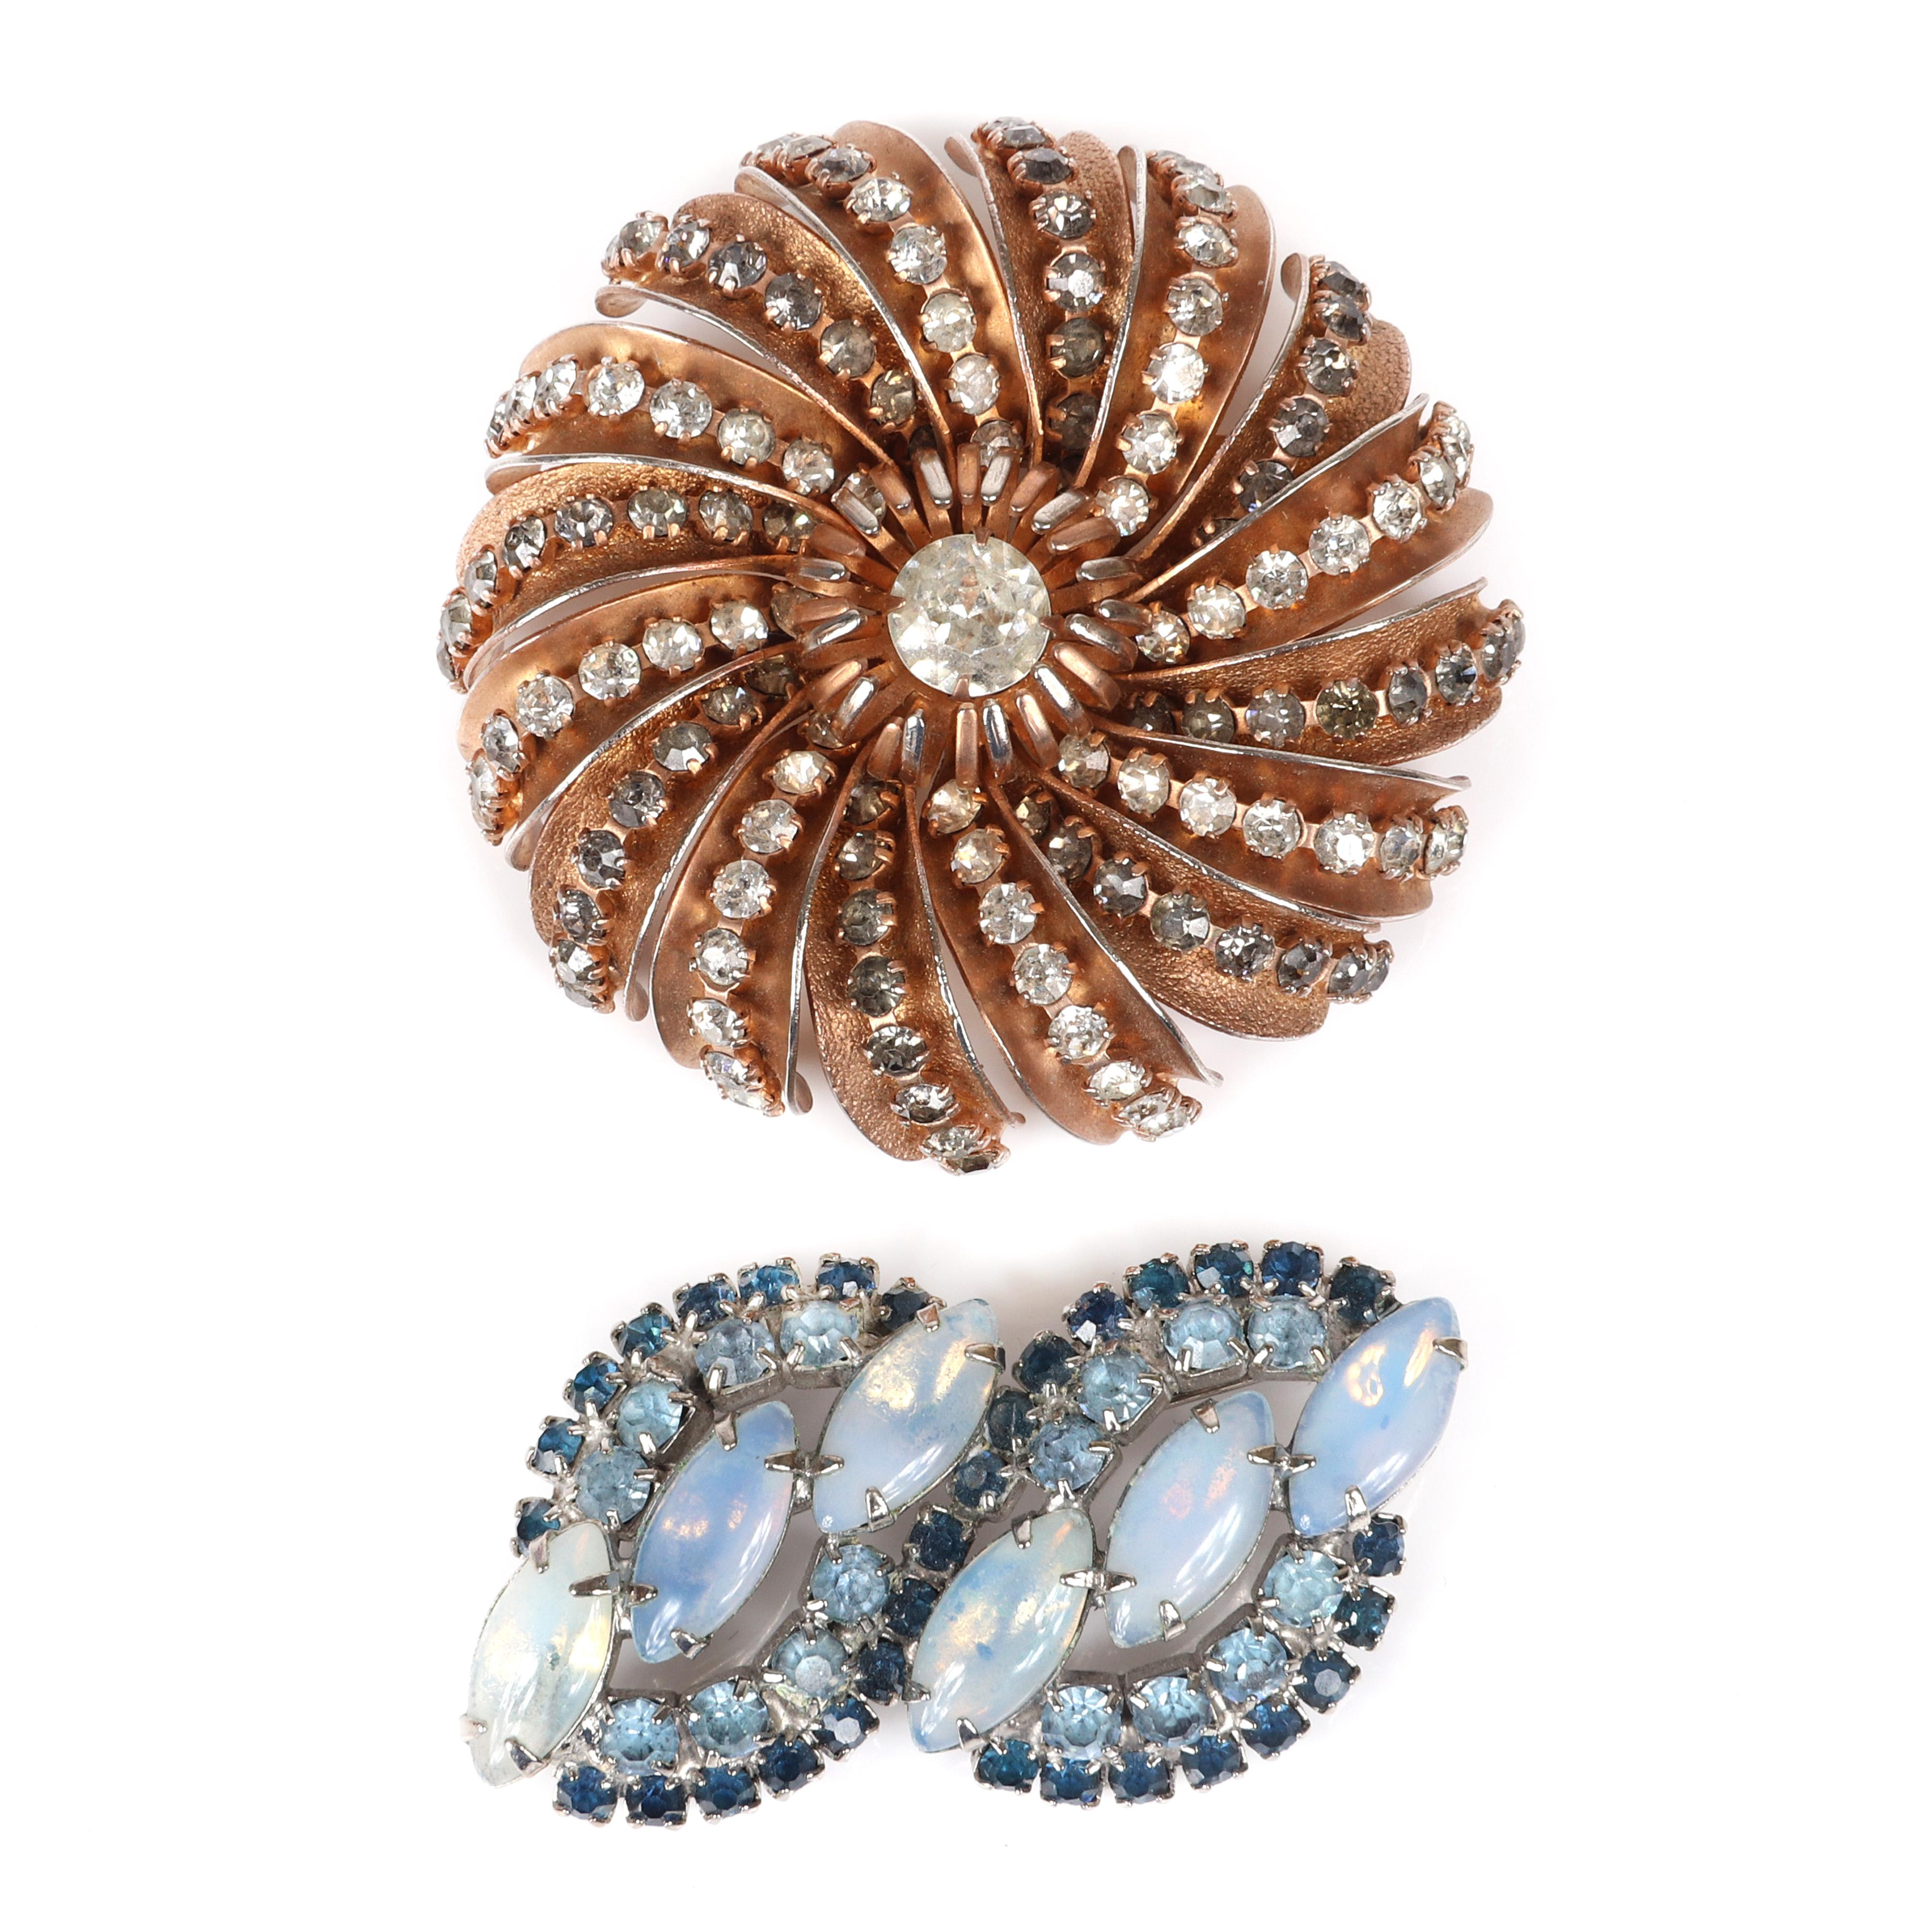 """Two vintage pins: Hobe copper color circular brooch with spiraling lines of rhinestones and unsigned double oval brooch with blue rhinestones and marquise moonstones. 2 1/4""""diam (Hobe brooch)"""